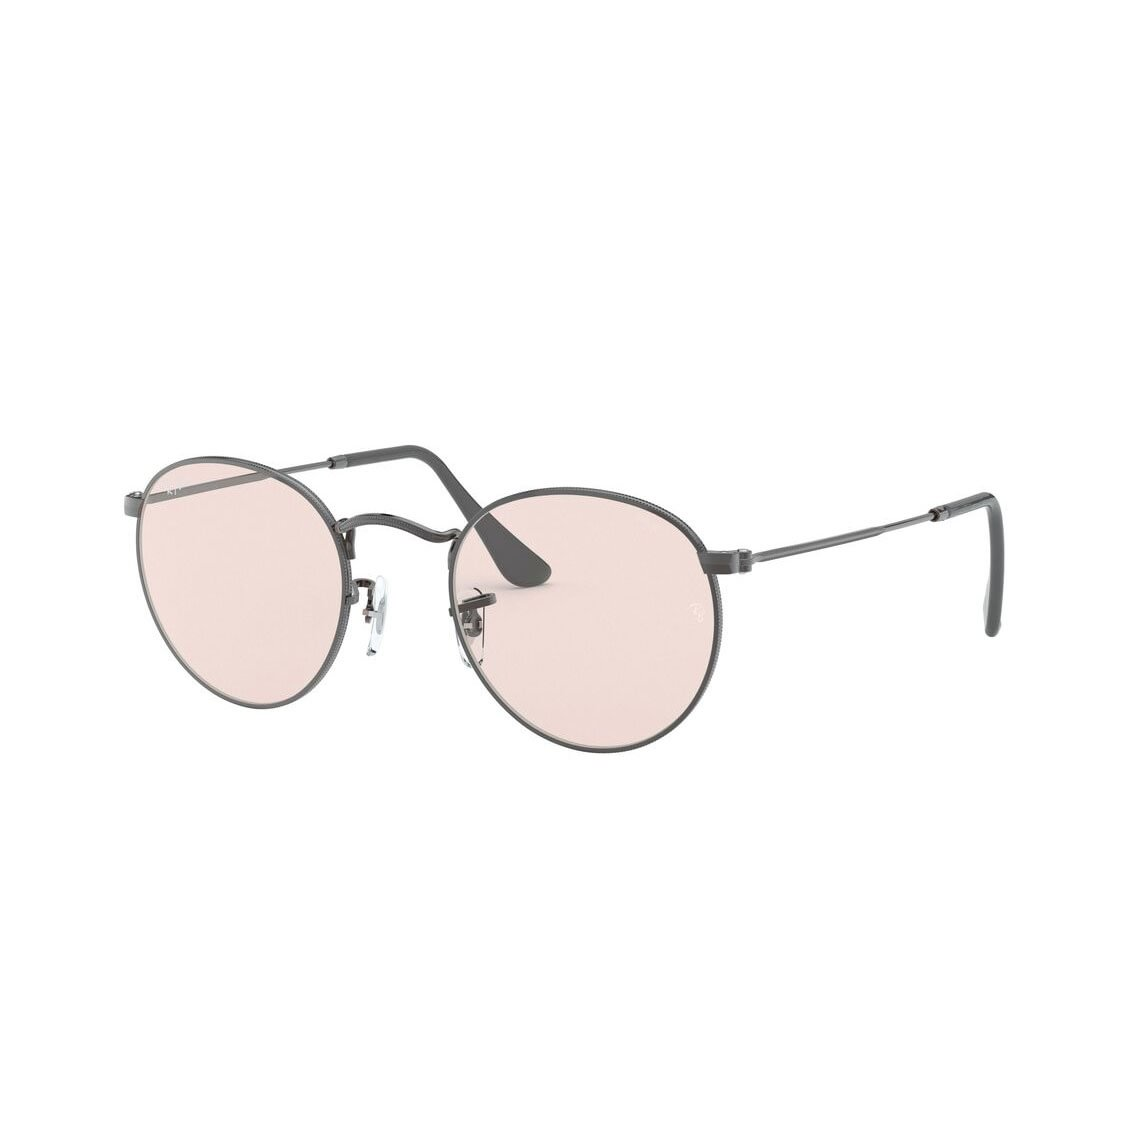 Ray-Ban Round metal RB3447 Solid Evolve 004/T5 5021